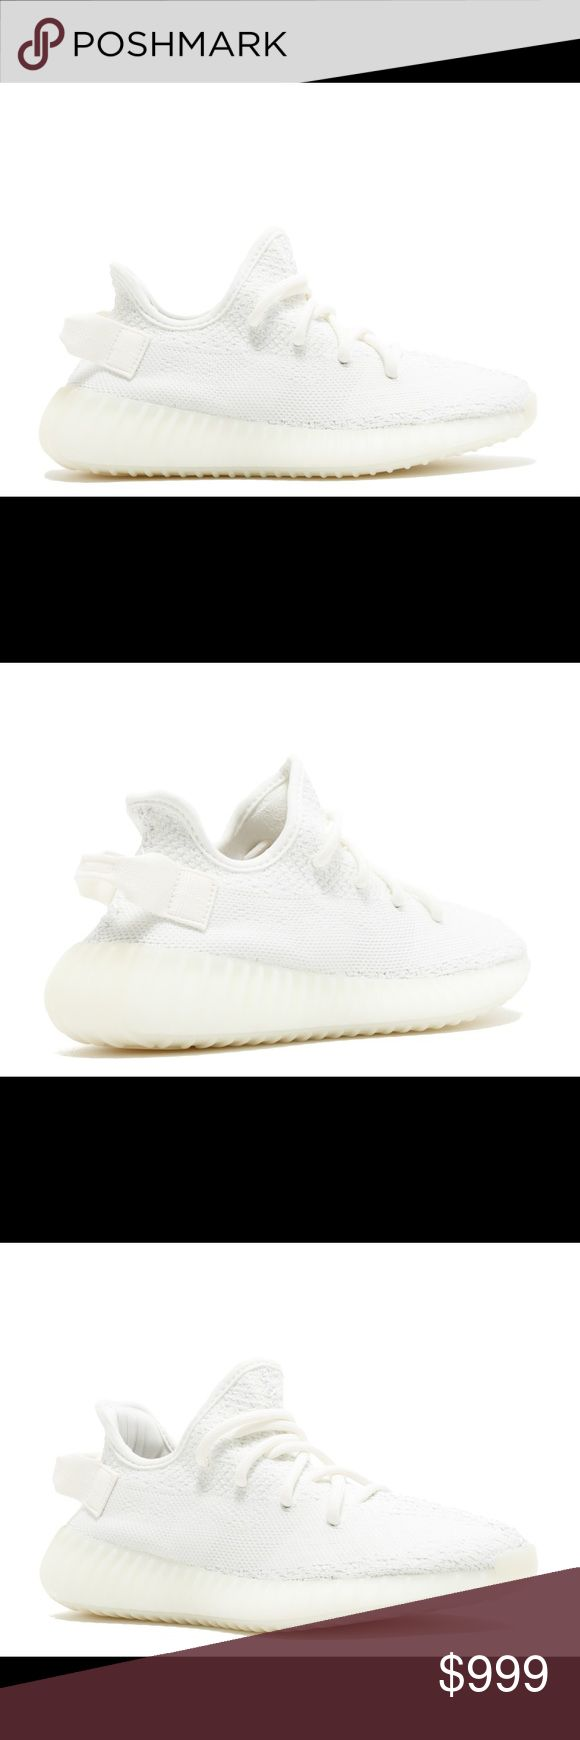 """Yeezy Boost 350 V2 """"Cream"""" Yeezy Boost 350 V2 """"Cream"""" Size 14. Brand New. Yeezy Shoes Sneakers"""